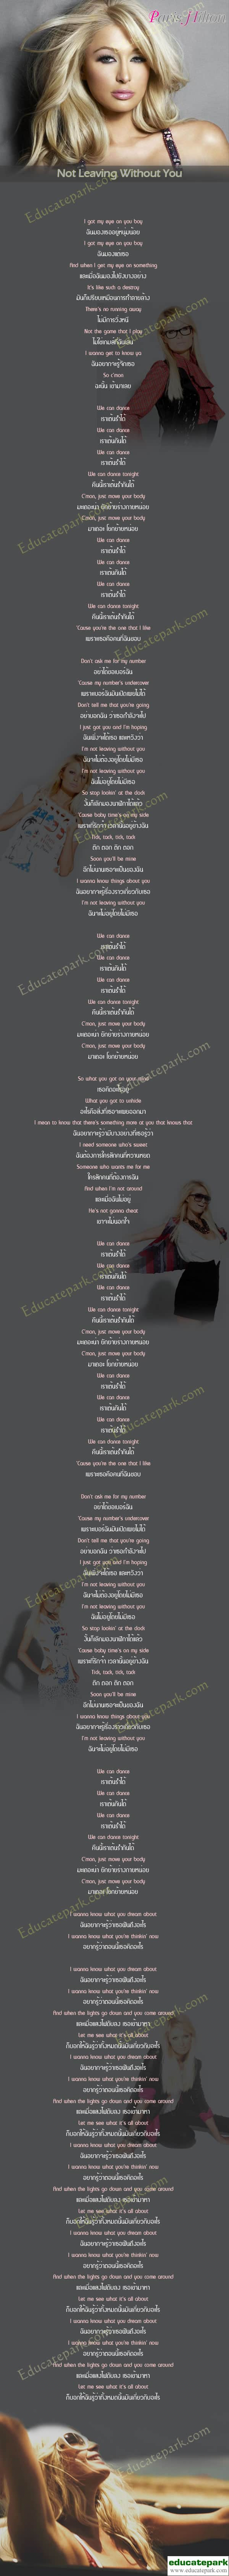 แปลเพลง Not Leaving Without You - Paris Hilton